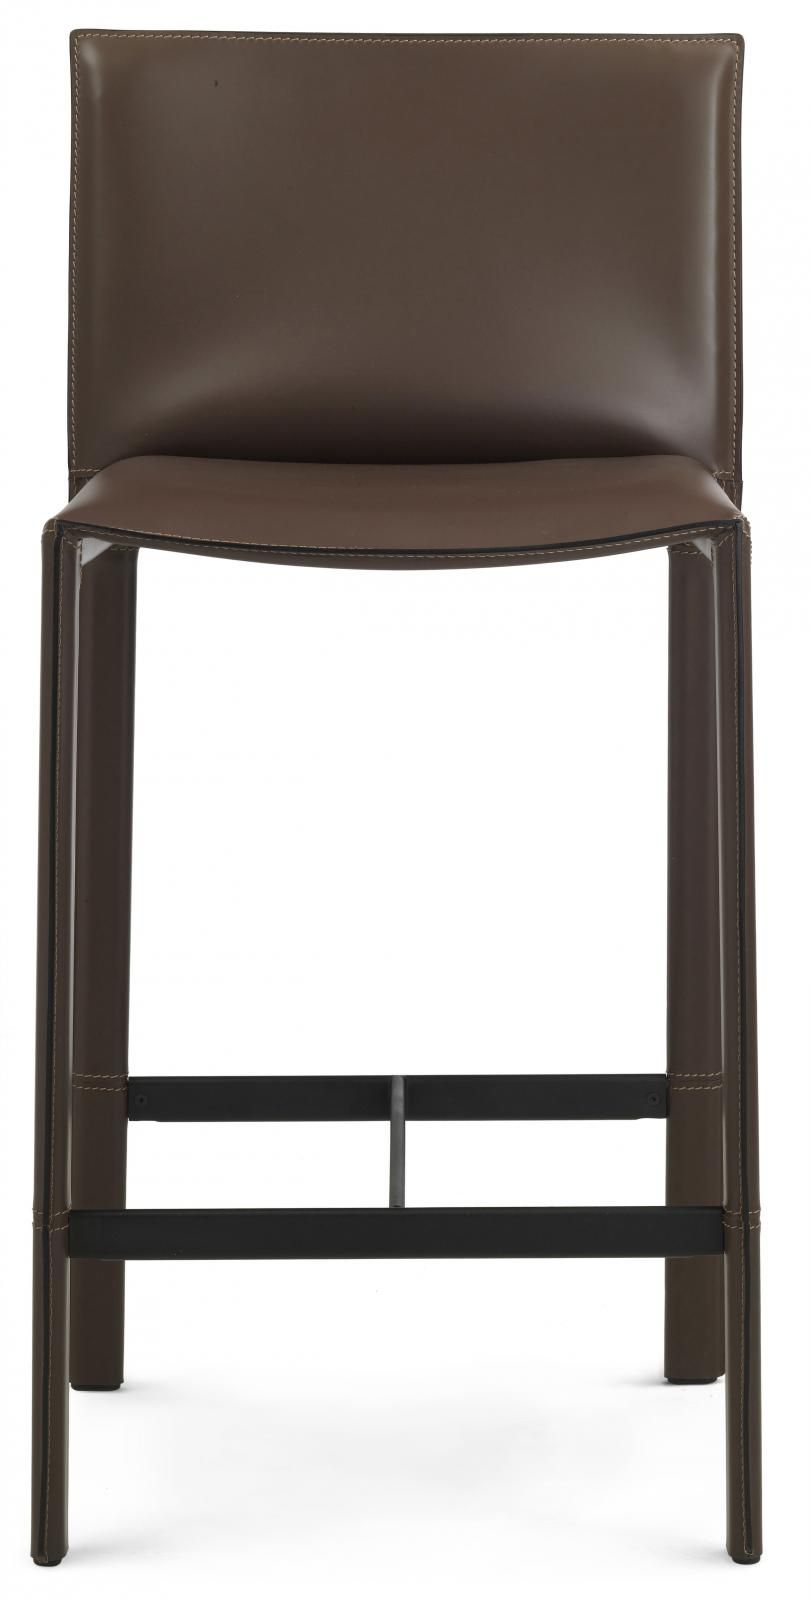 Beautiful Italian Luxury Bar Stool With Luxurious Leather Coverings With Visible Impeccable St Modern Bar Stools Modern Counter Stools Modern Vintage Furniture